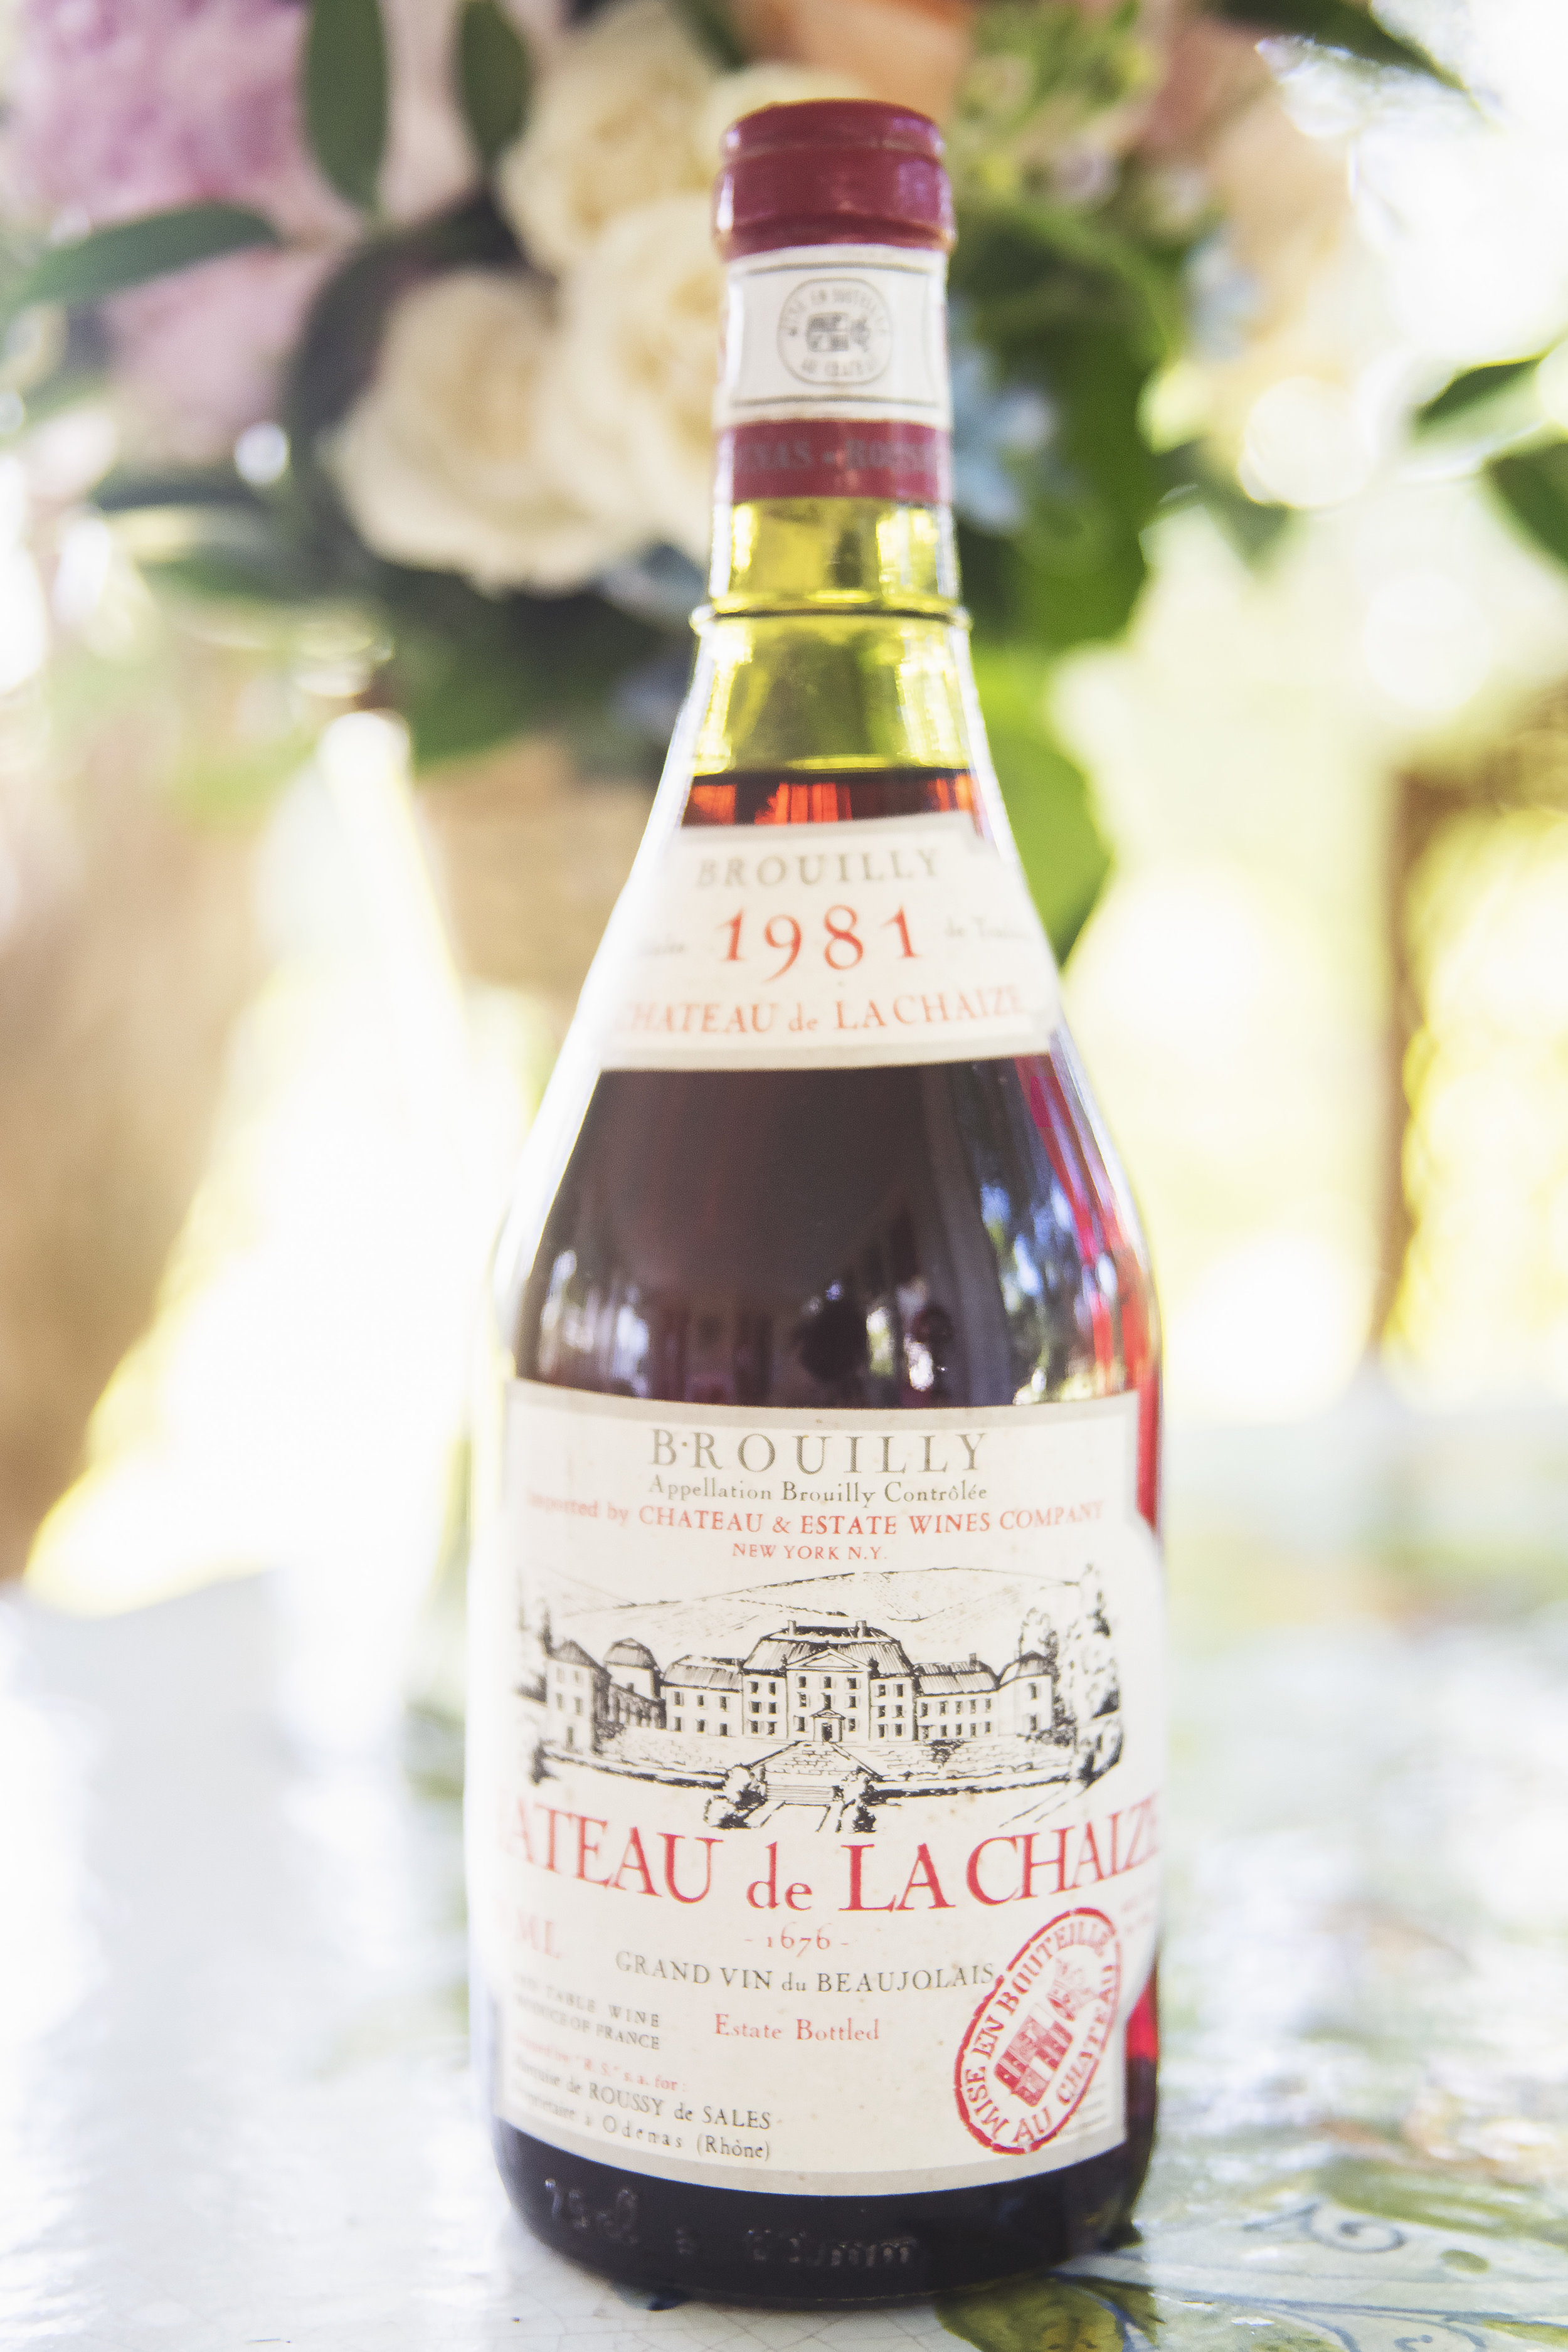 After I was born, my parents bought and stored a case of 1981 Bordeaux, the same vintage as my birth year. While their intention was that they would serve it at my wedding, I'm certain that said wedding took place well after they thought it would. So a little bit selfishly, and also because we didn't even know whether it was still good, we hung on to it until our solo dinner that night. We hopped in the car in the early evening light and drove five minutes to a local inn. We ate bacon cheeseburgers on a covered porch overlooking a river, listened to the rain pour down, and drank the best wine we've ever drunk.